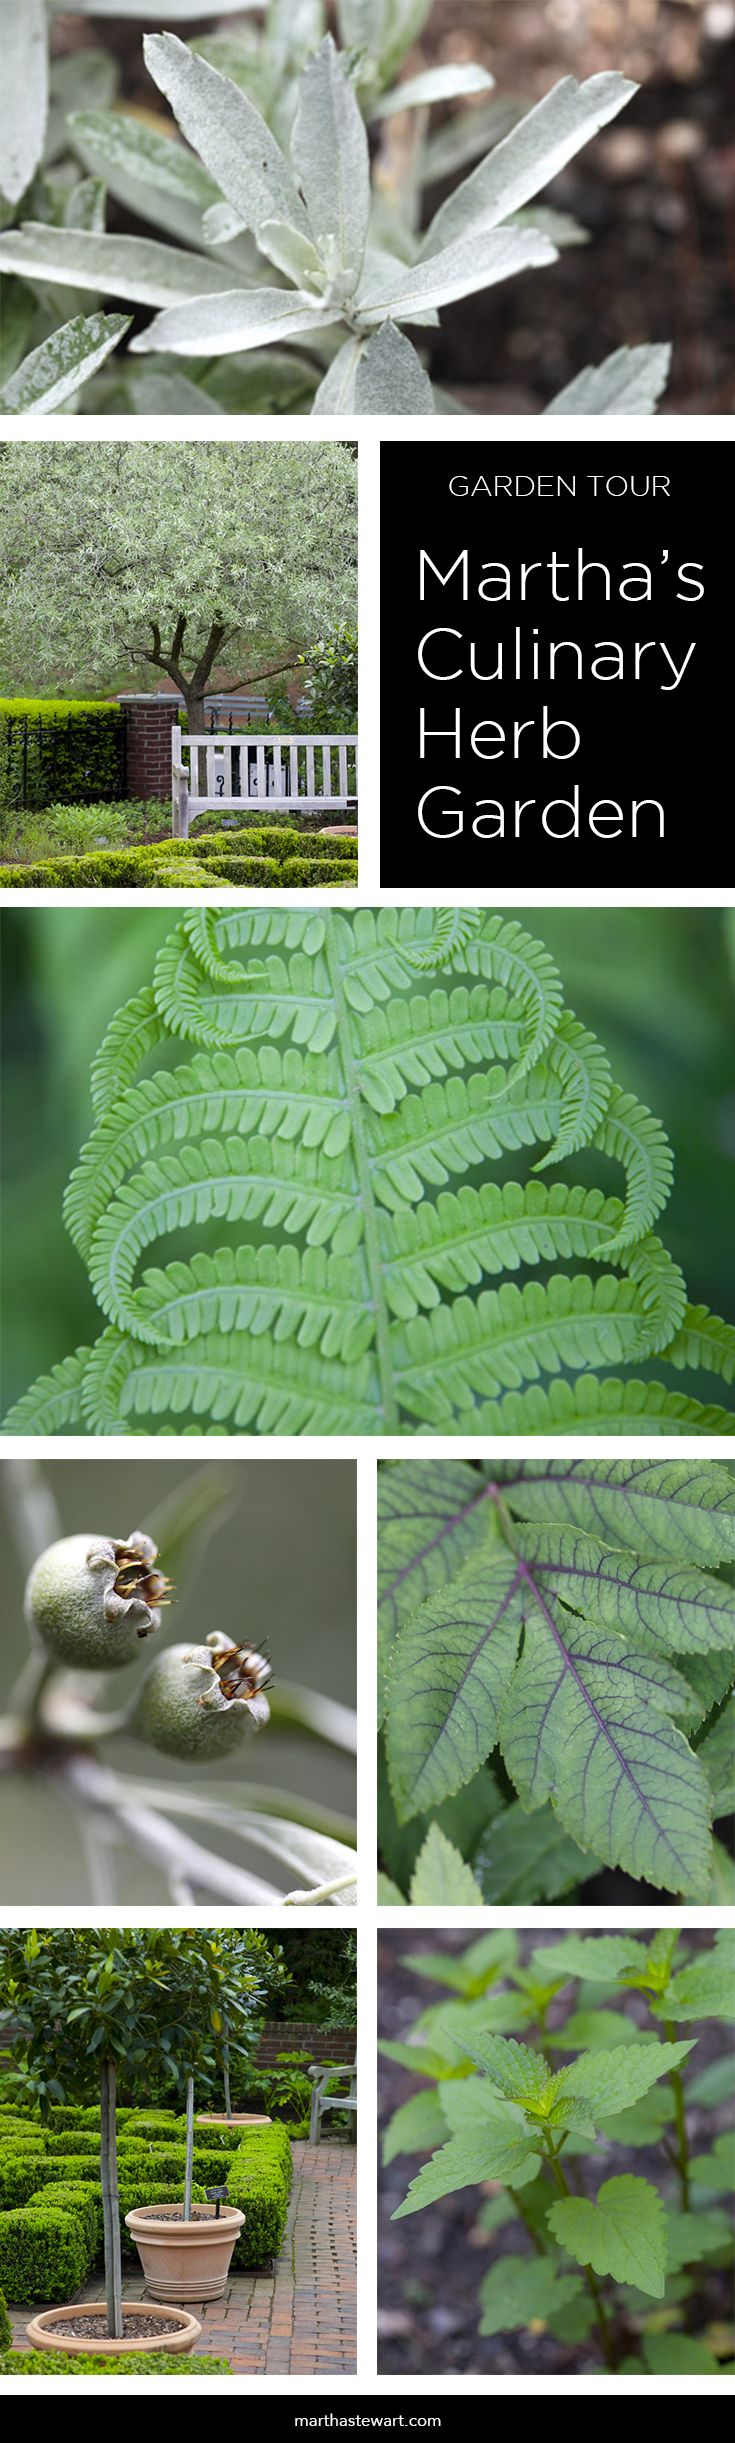 images about Gardening Tips Ideas on Pinterest